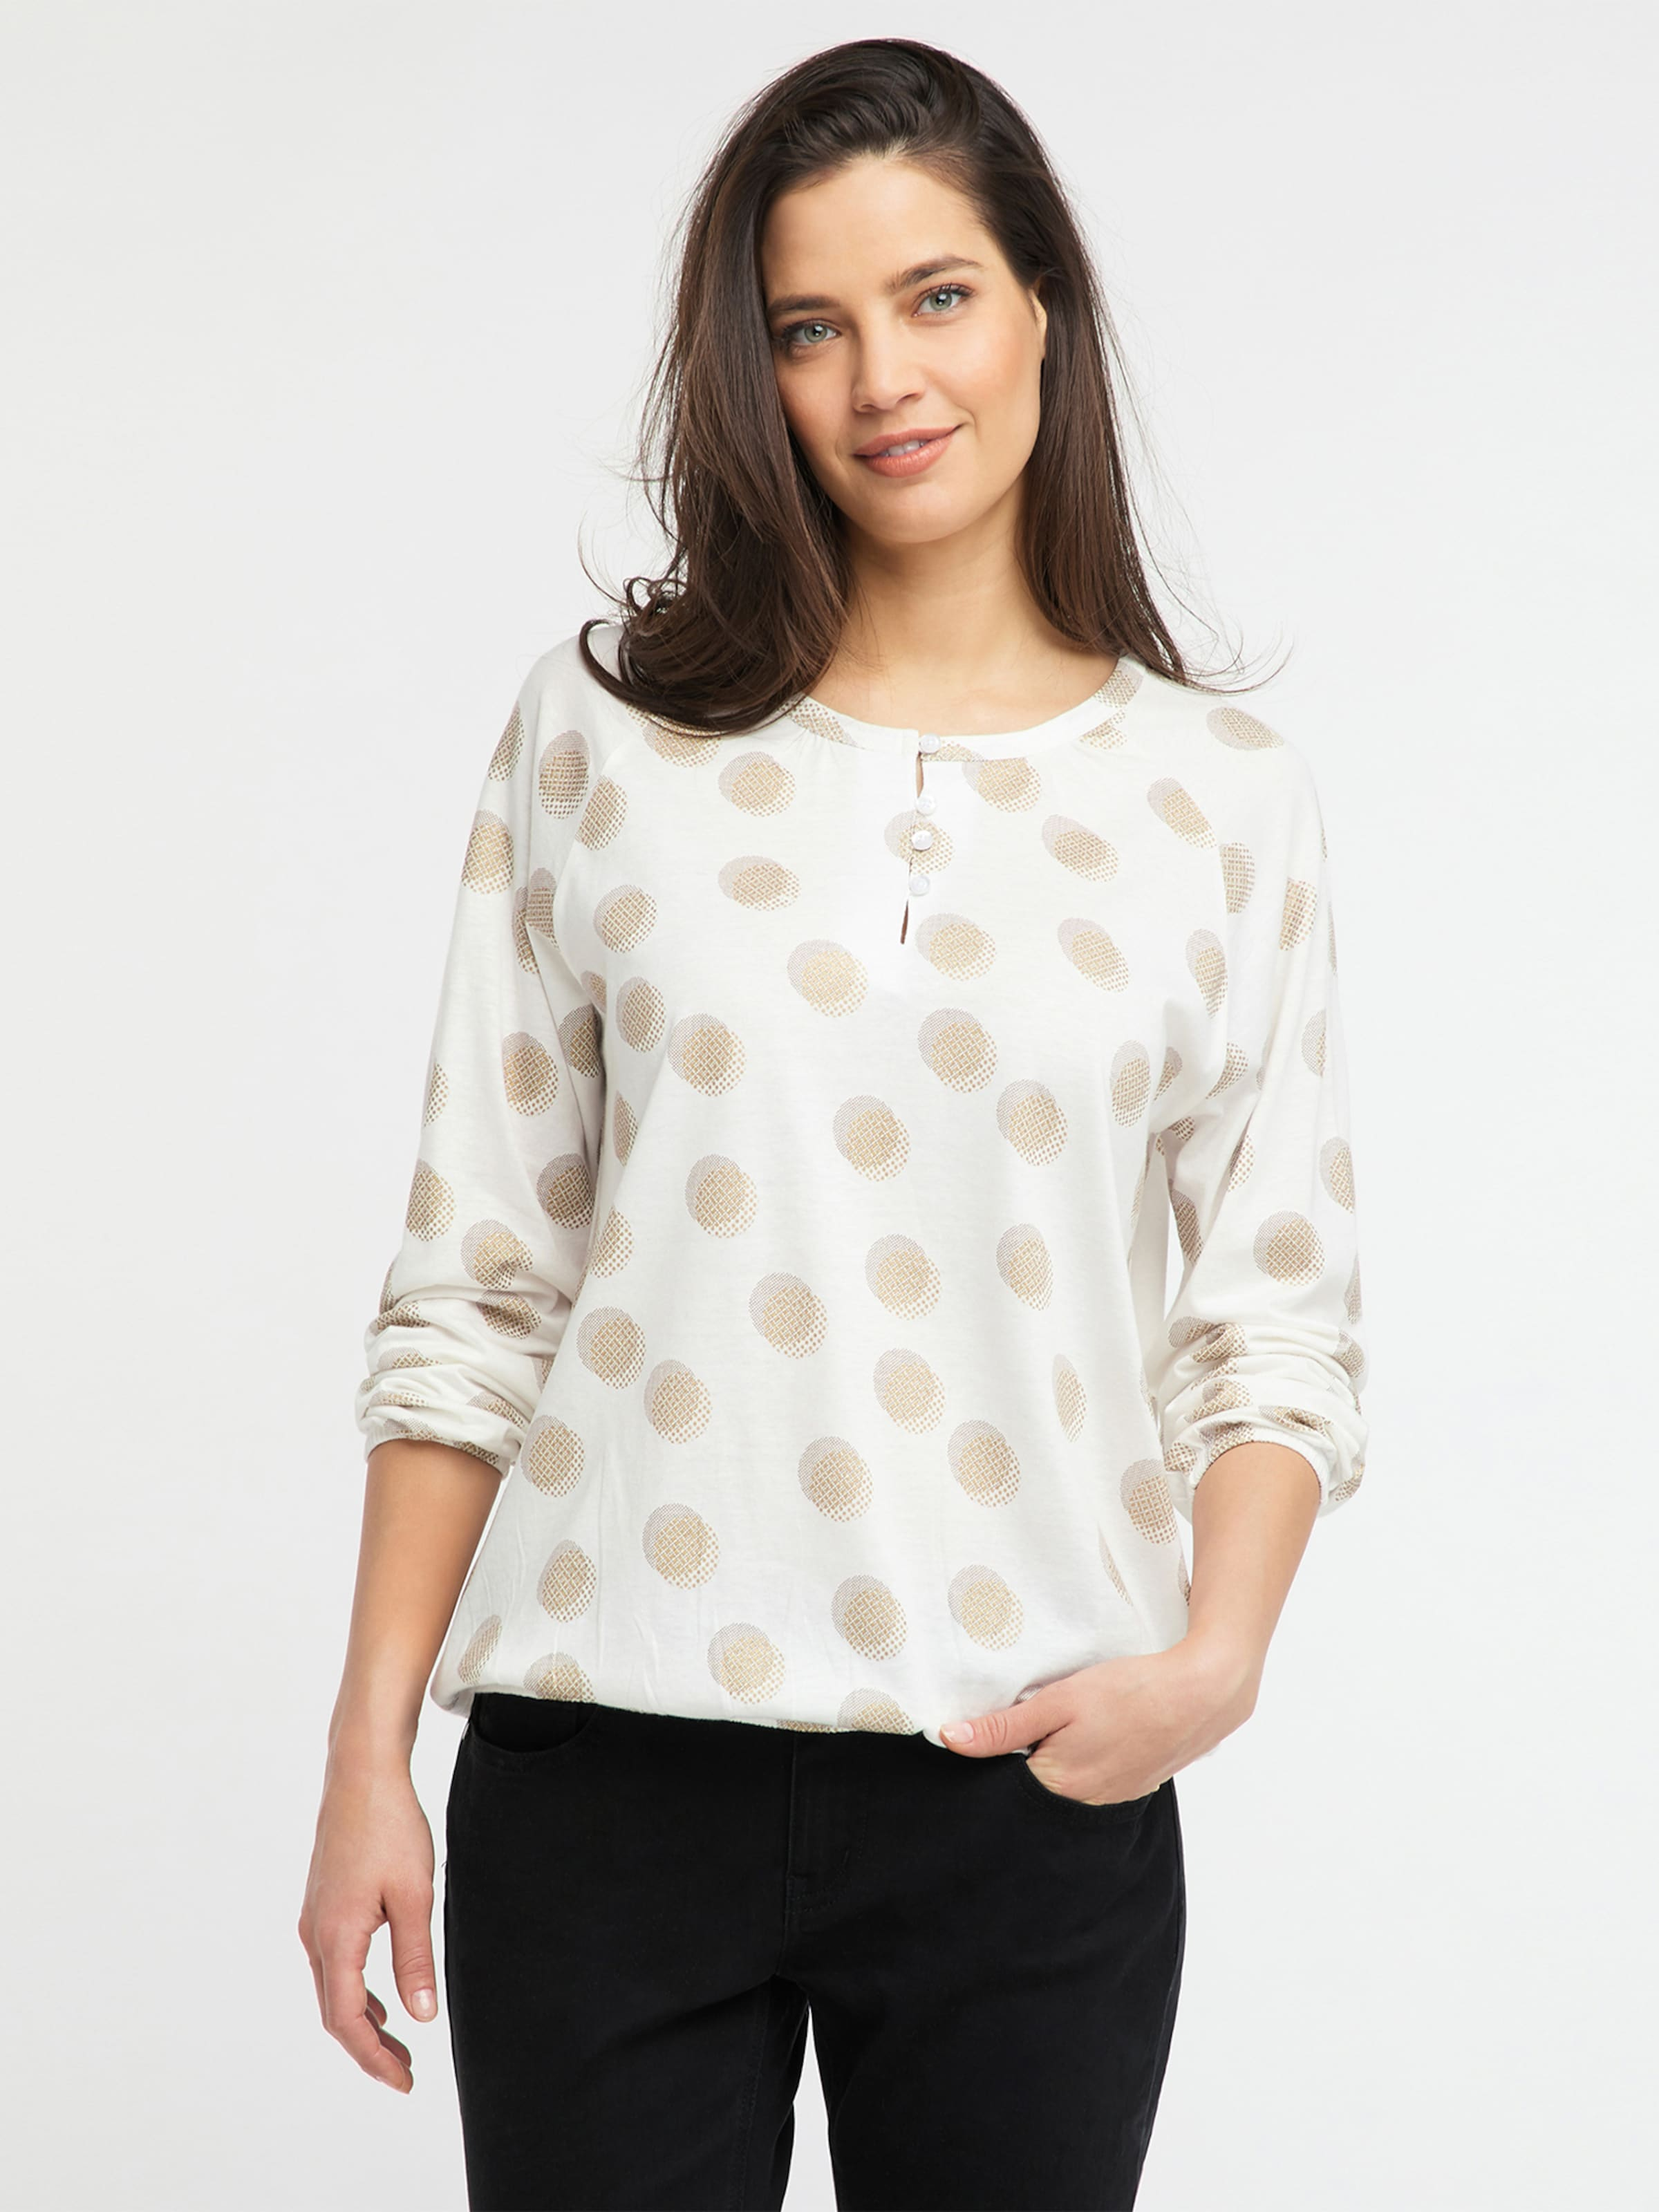 Fashion shirt Nyc 'panni' T En NoisetteBlanc Broadway SpGqzMUV